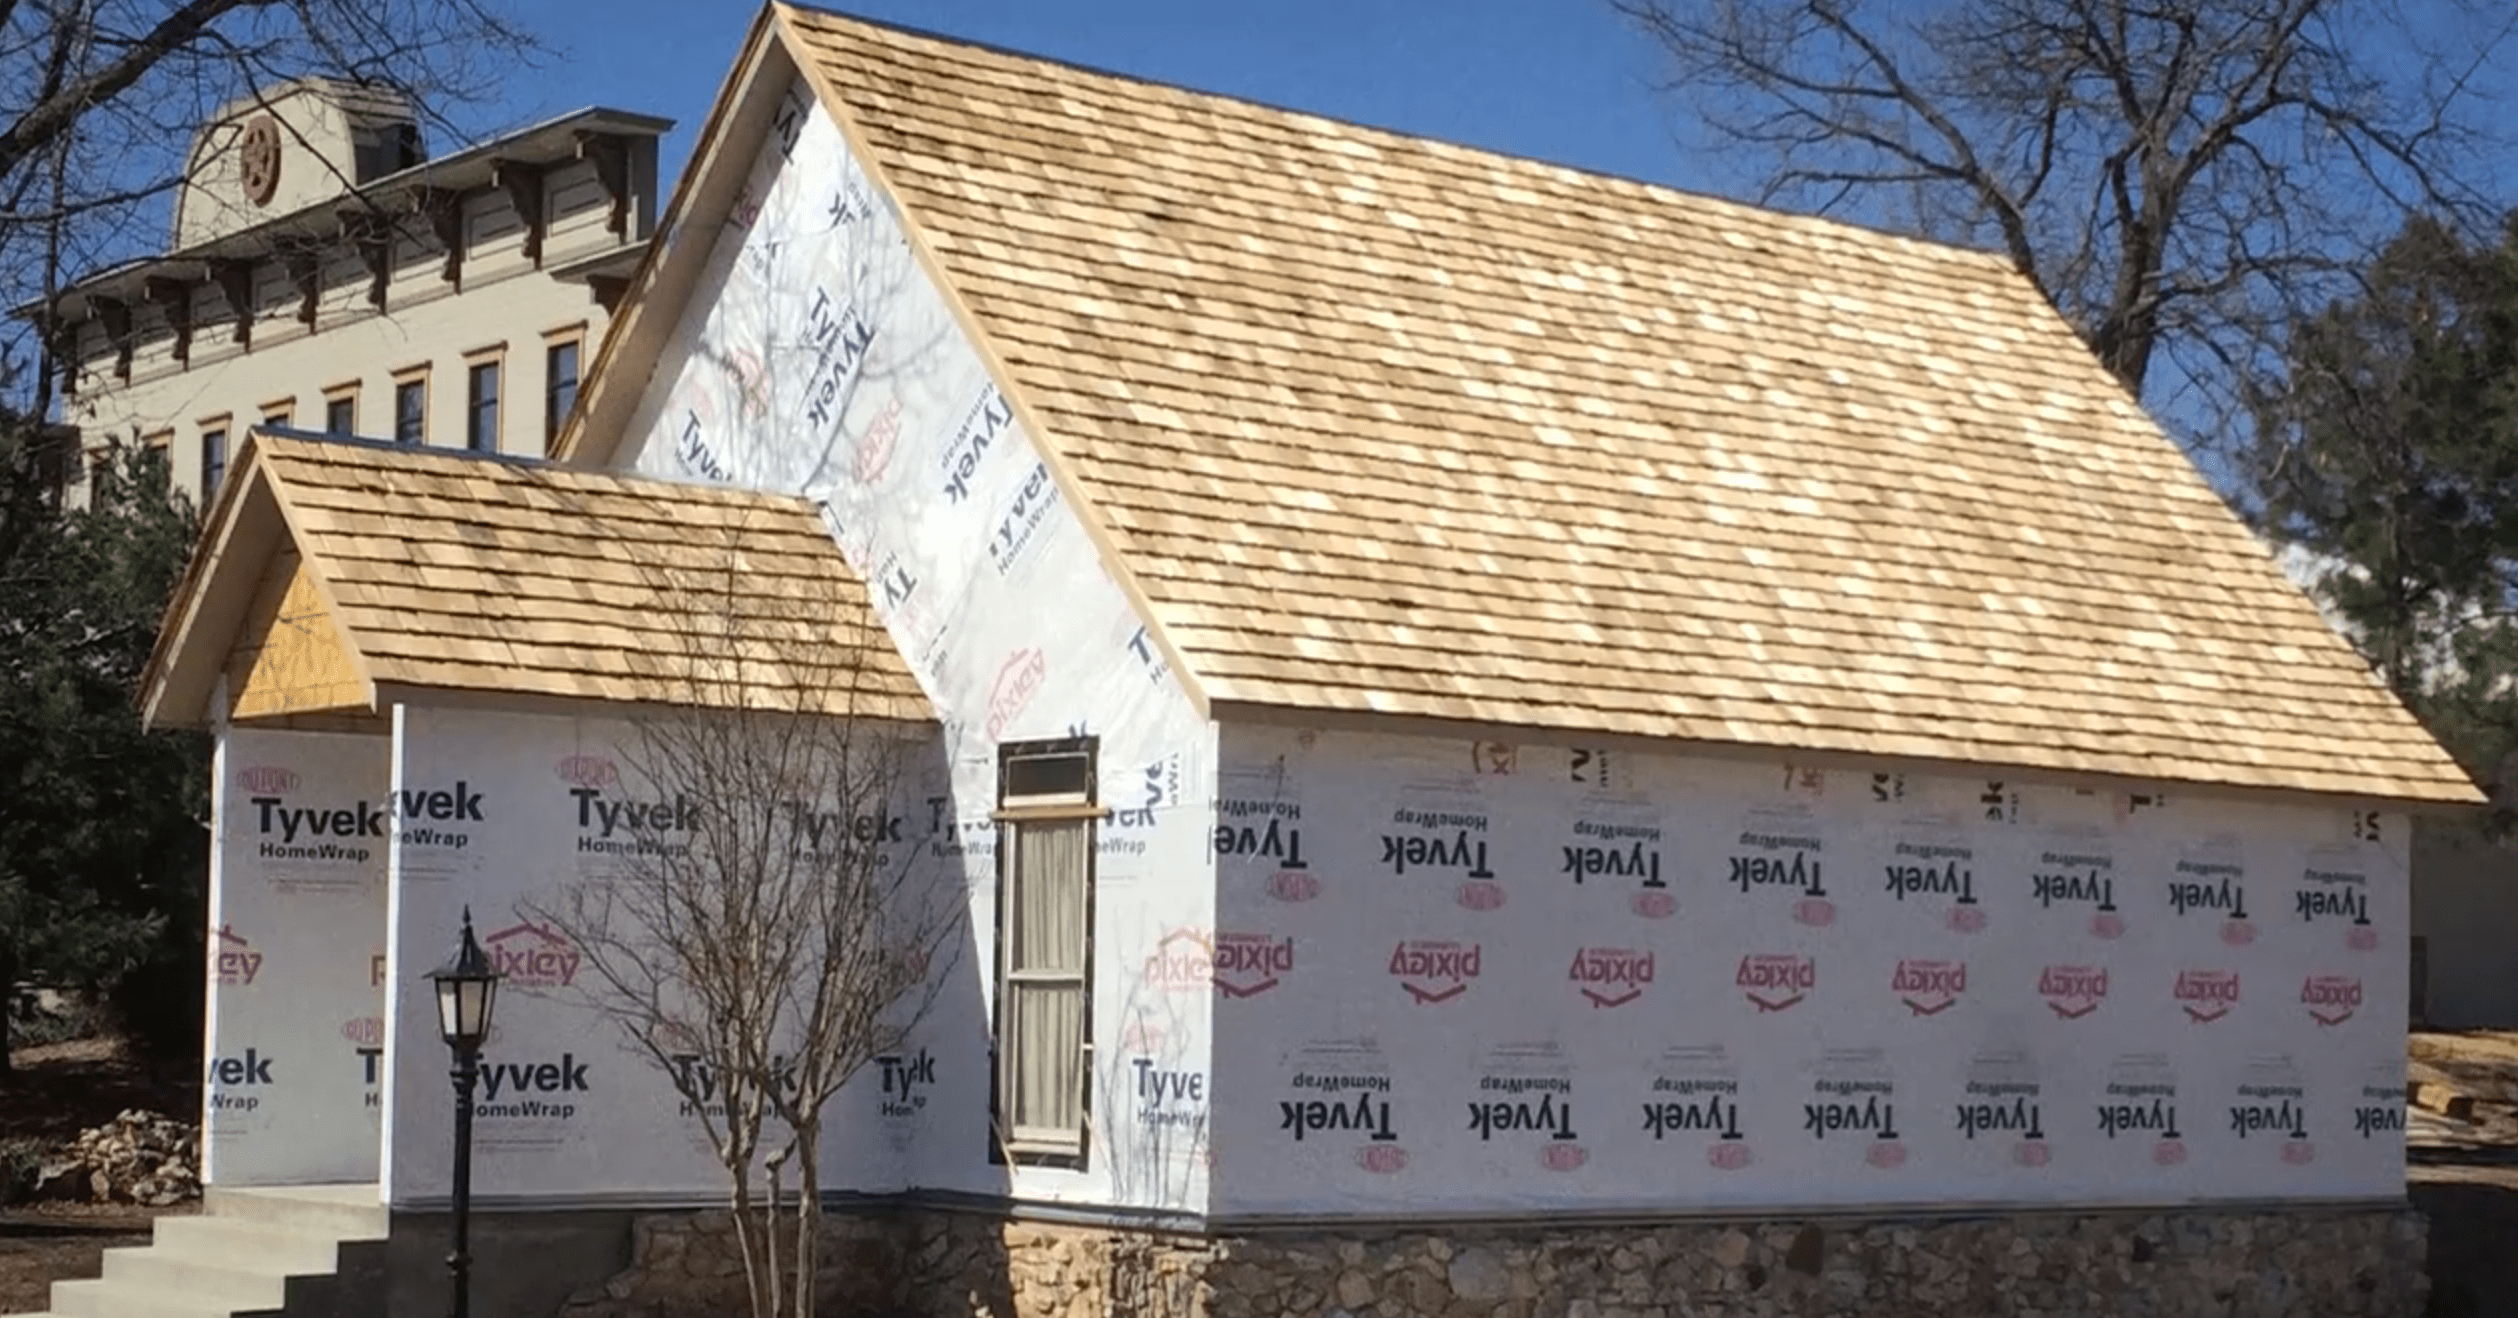 Tulsa roofing company | On the Rock Roofing